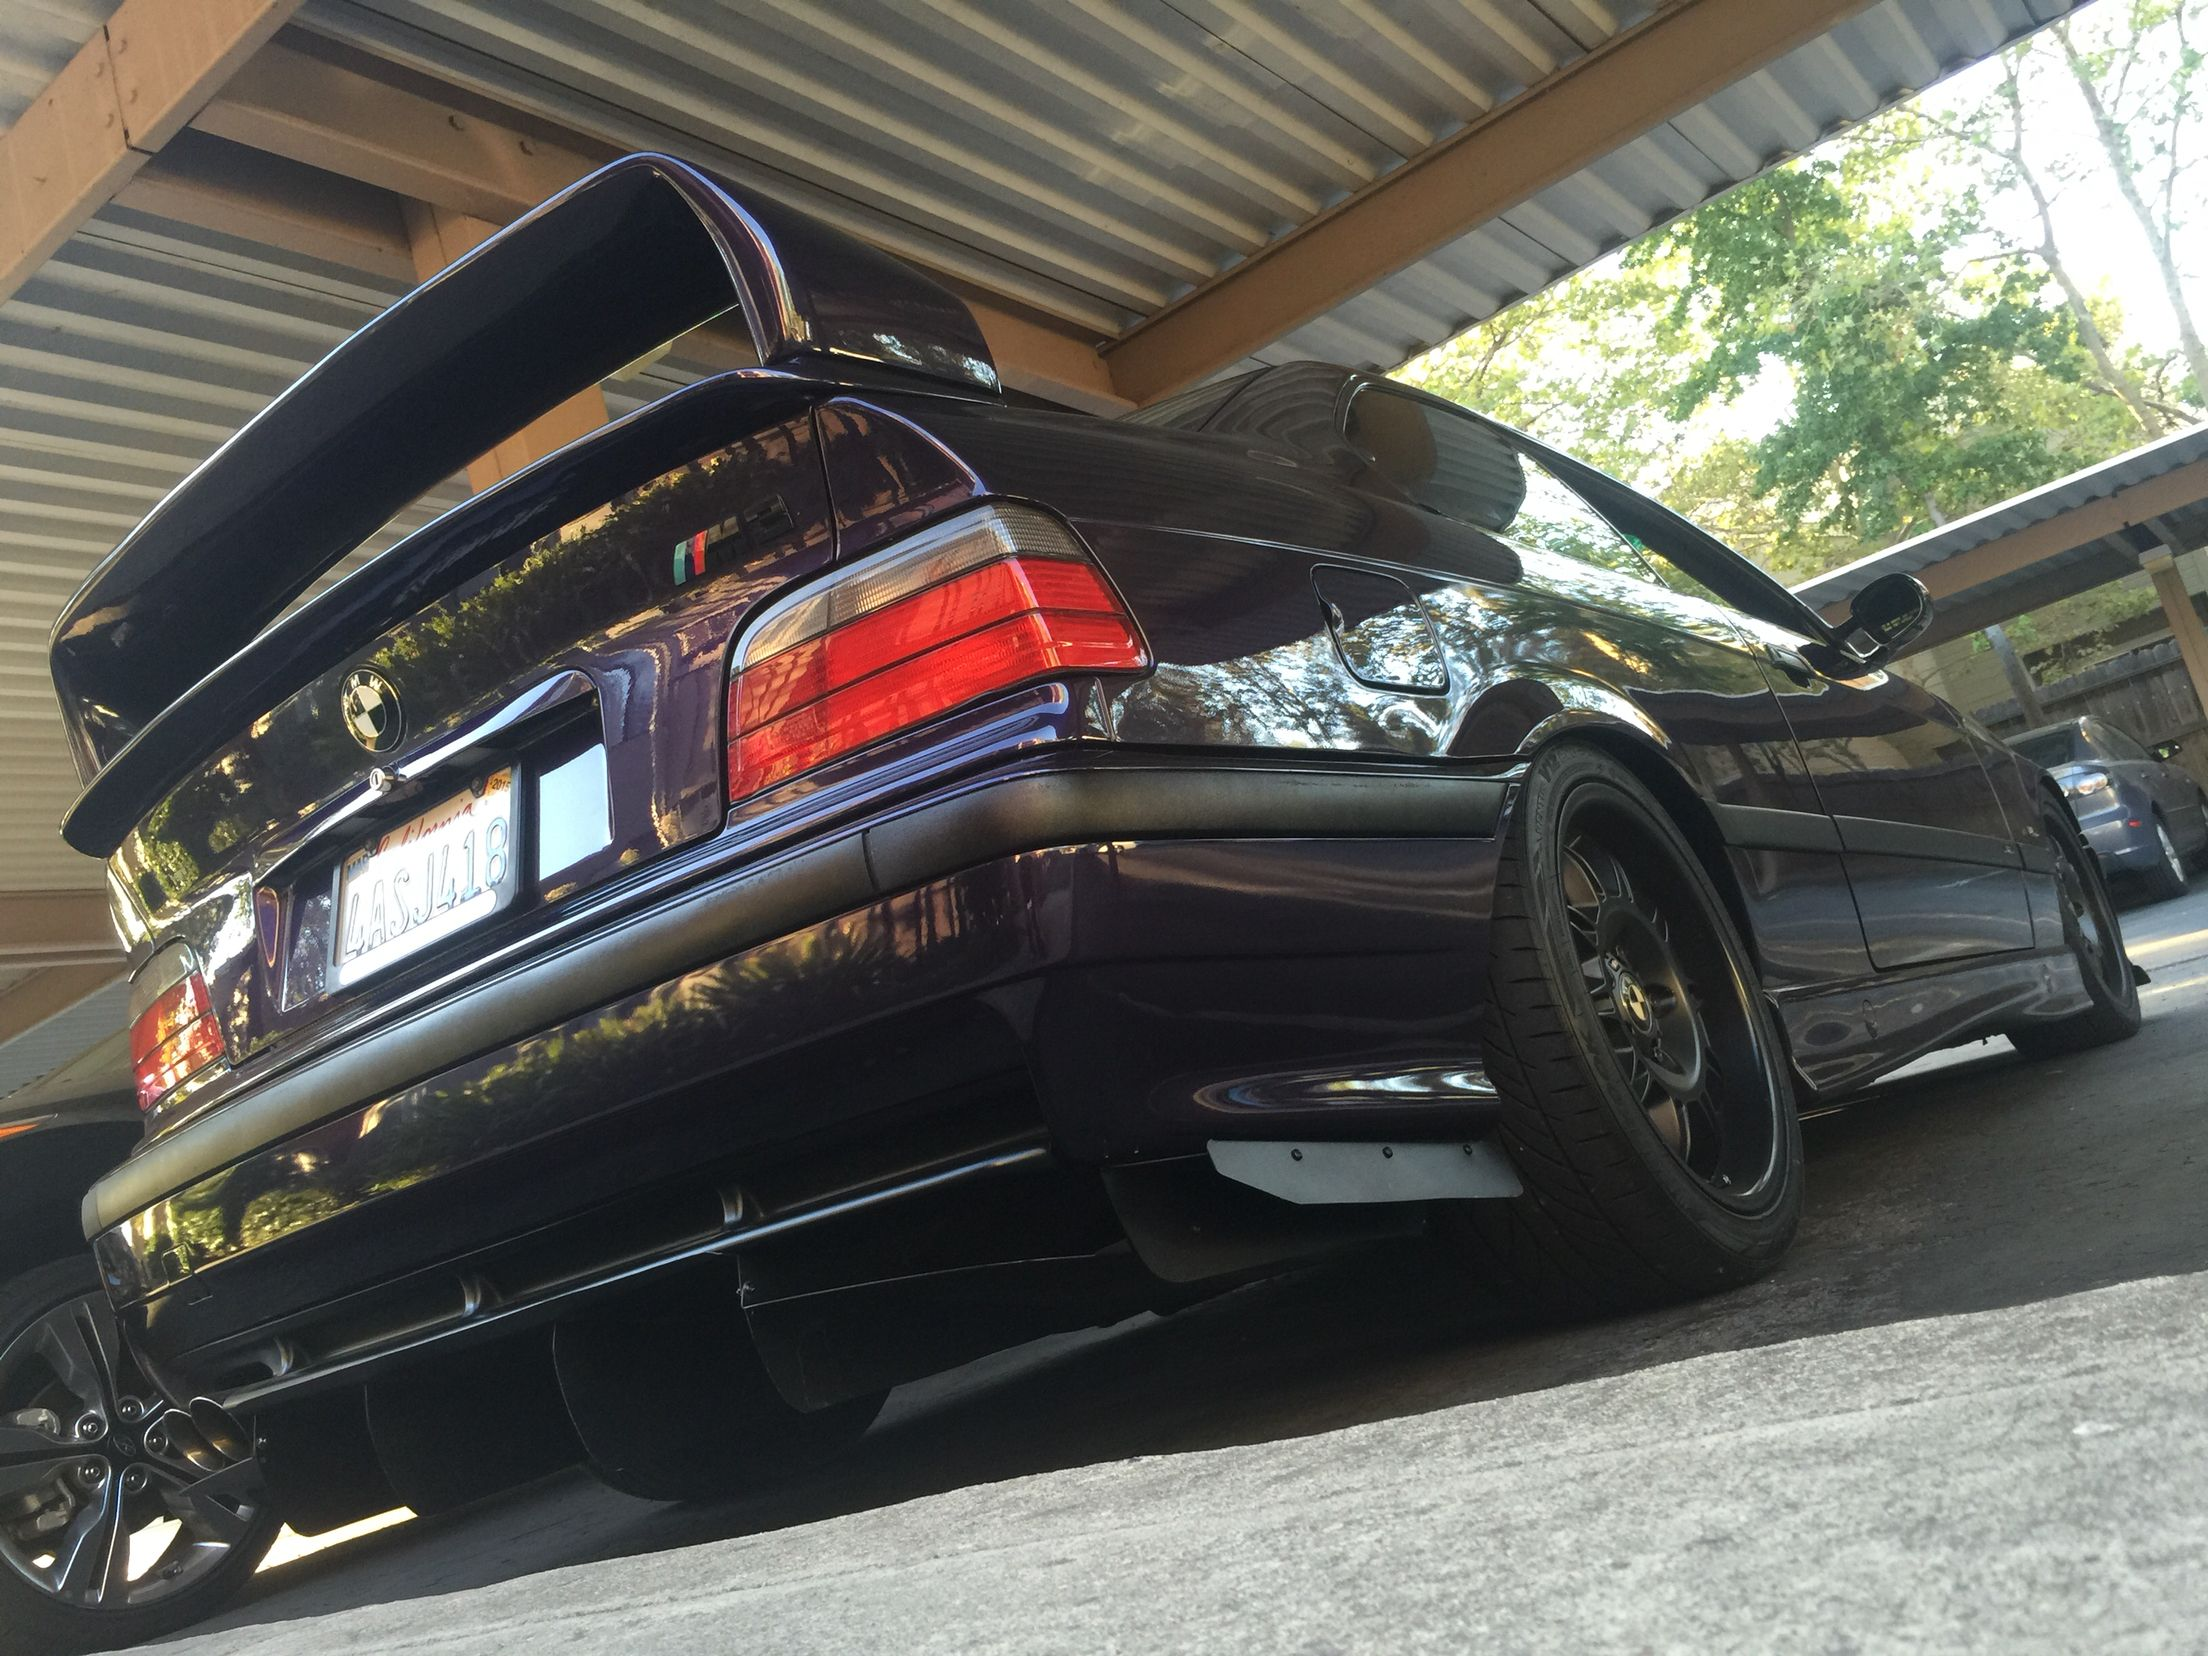 Diffuser and spoiler installed 1998 bmw m3 techno violet coupe purple stance low slammed racecar ltw